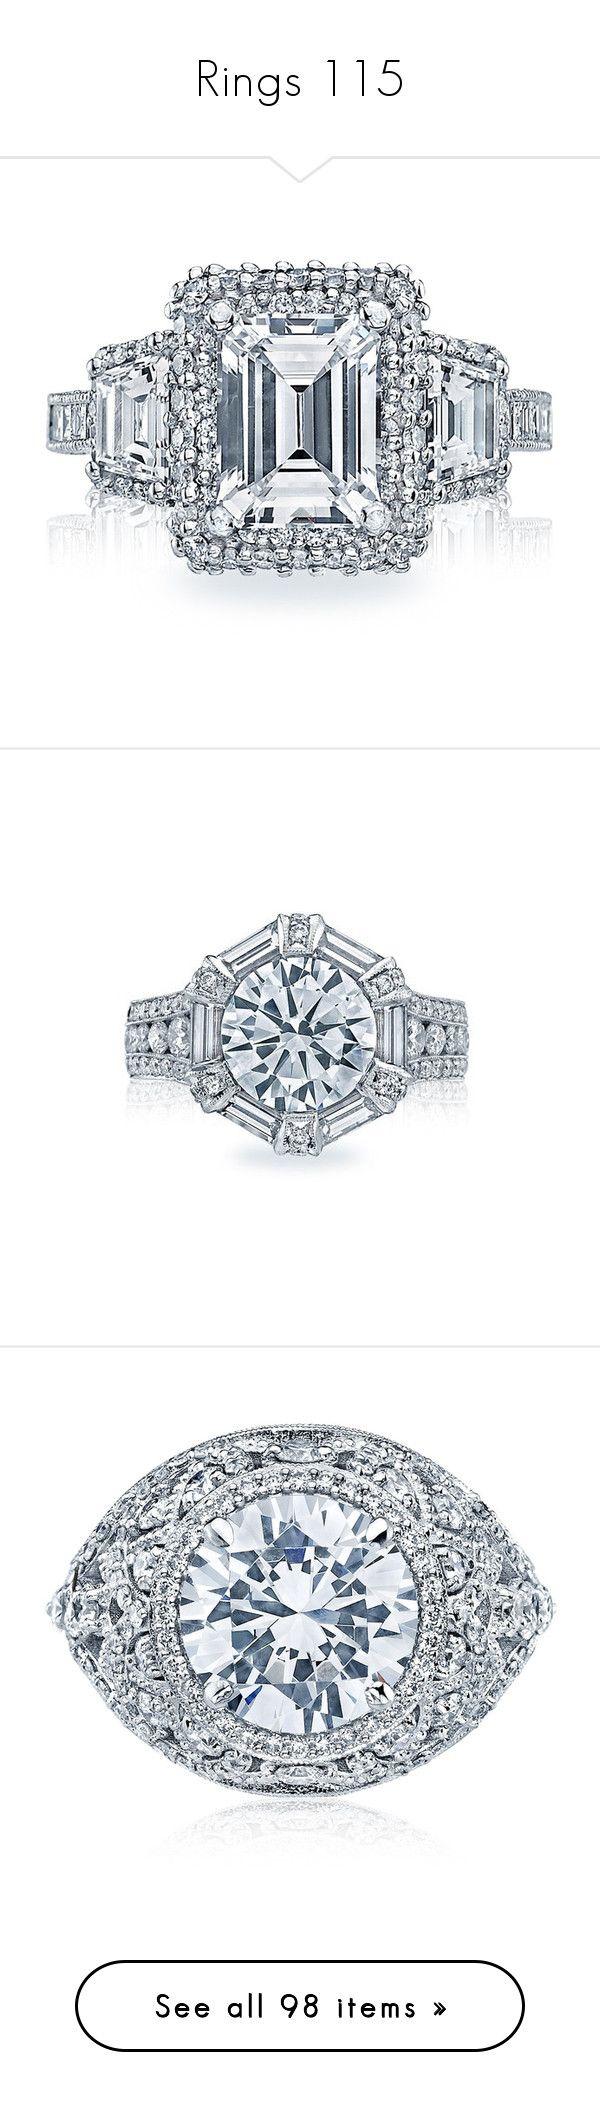 """""""Rings 115"""" by singlemom ❤ liked on Polyvore featuring jewelry, rings, channel setting ring, tacori, tacori rings, channel set ring, tacori jewelry, twist ring, engagement rings and princess cut engagement rings"""